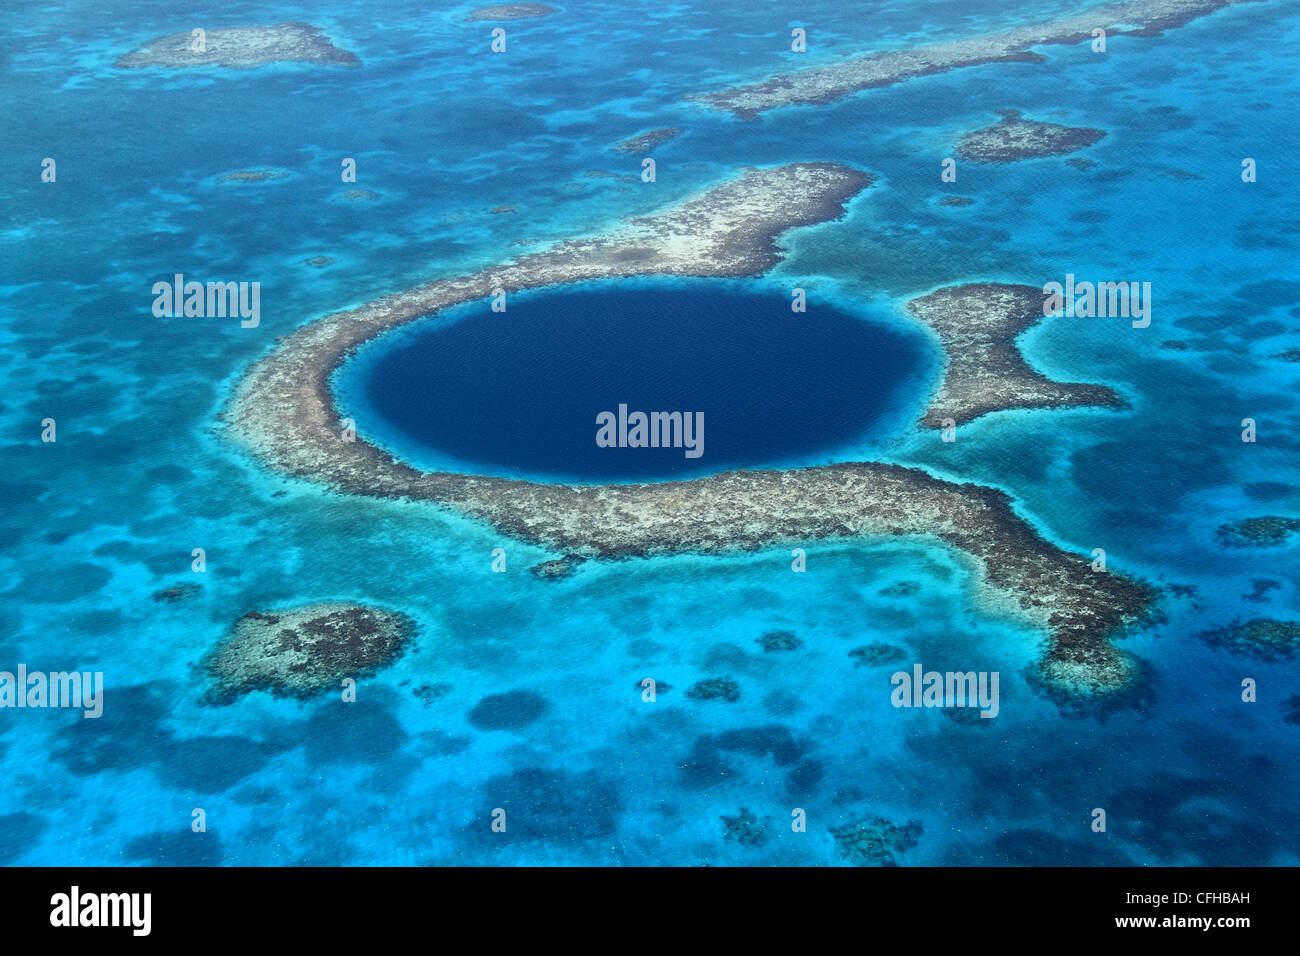 Great Blue Hole, a collapsed underwater cave system, Lighthouse Reef, Belize Barrier Reef, Belize, Caribbean, Central - Stock Image